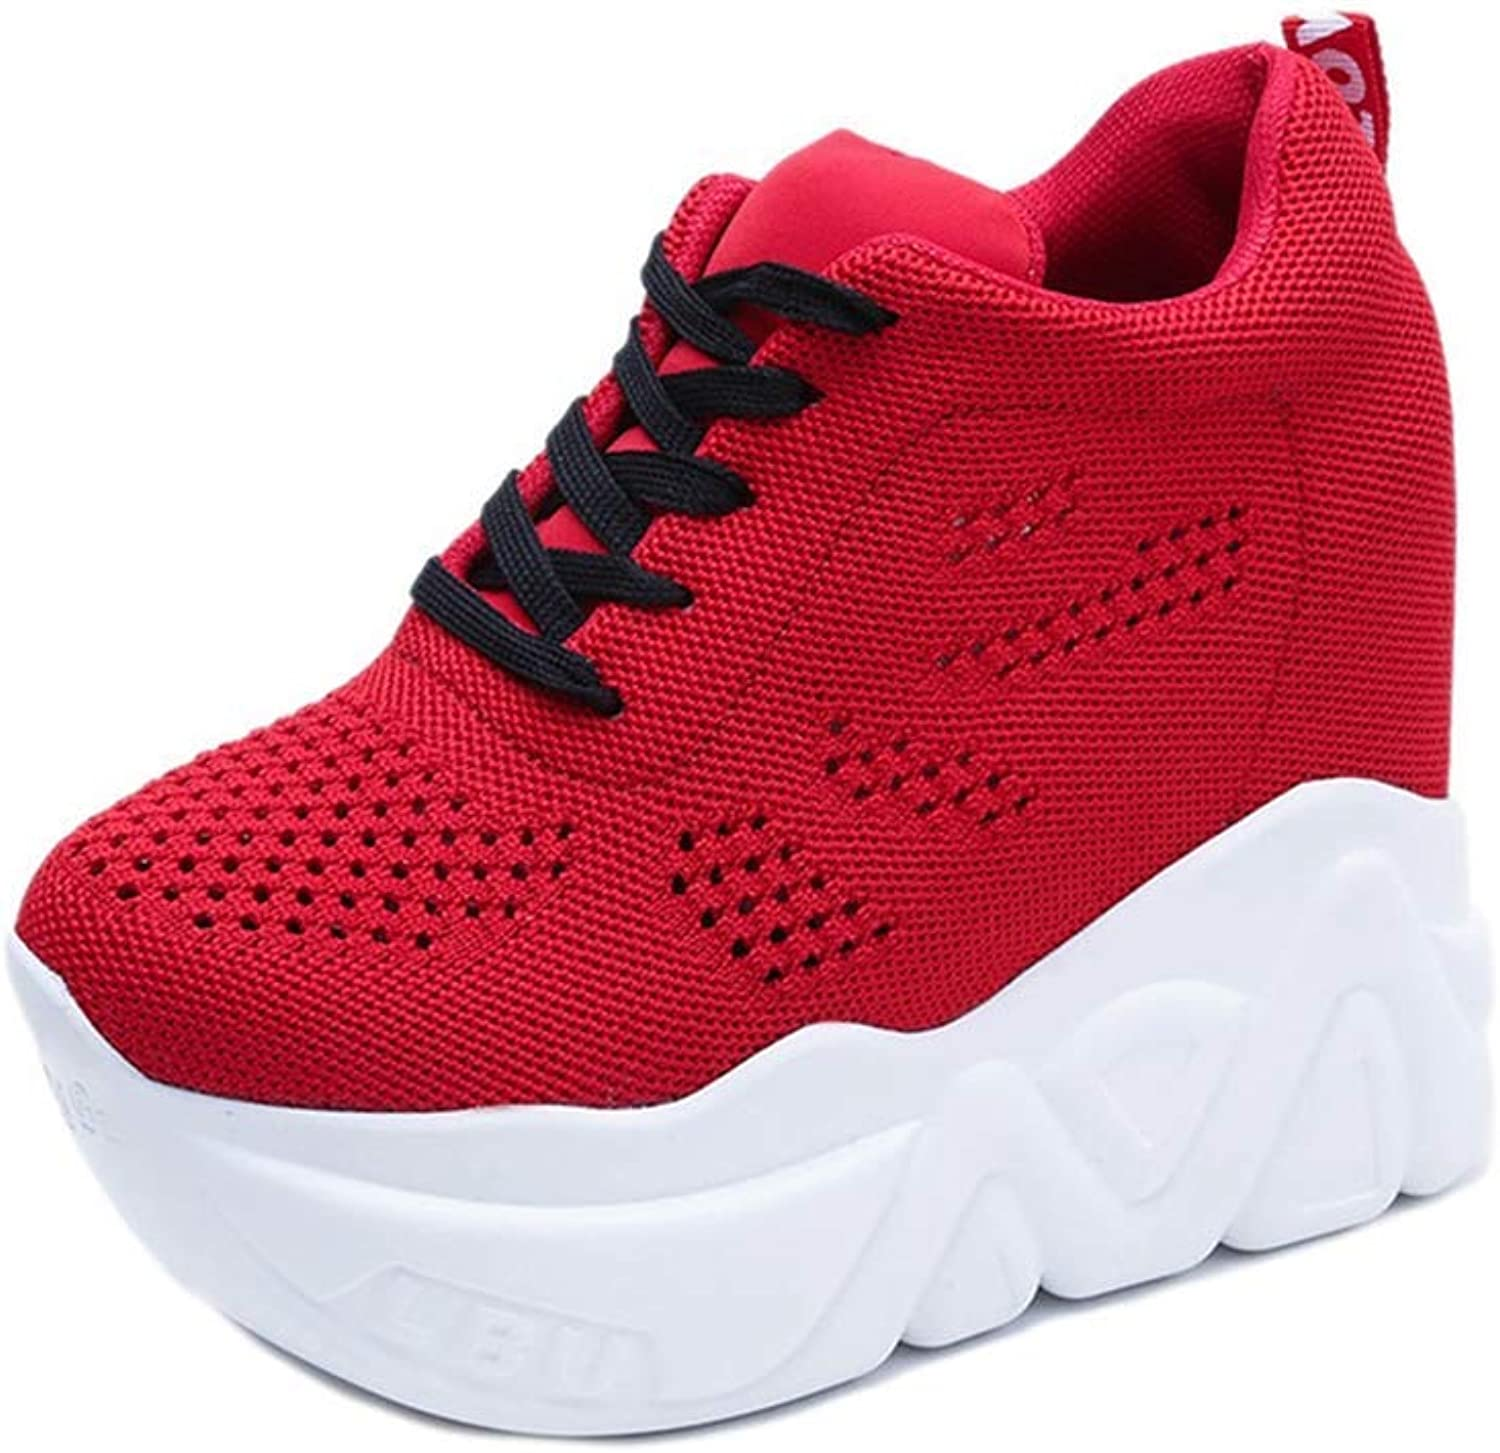 Lelehwhge Women's Fashion Increases Casual shoes Female Network Air Wedge Airplane Platform shoes Red 6.5 M US